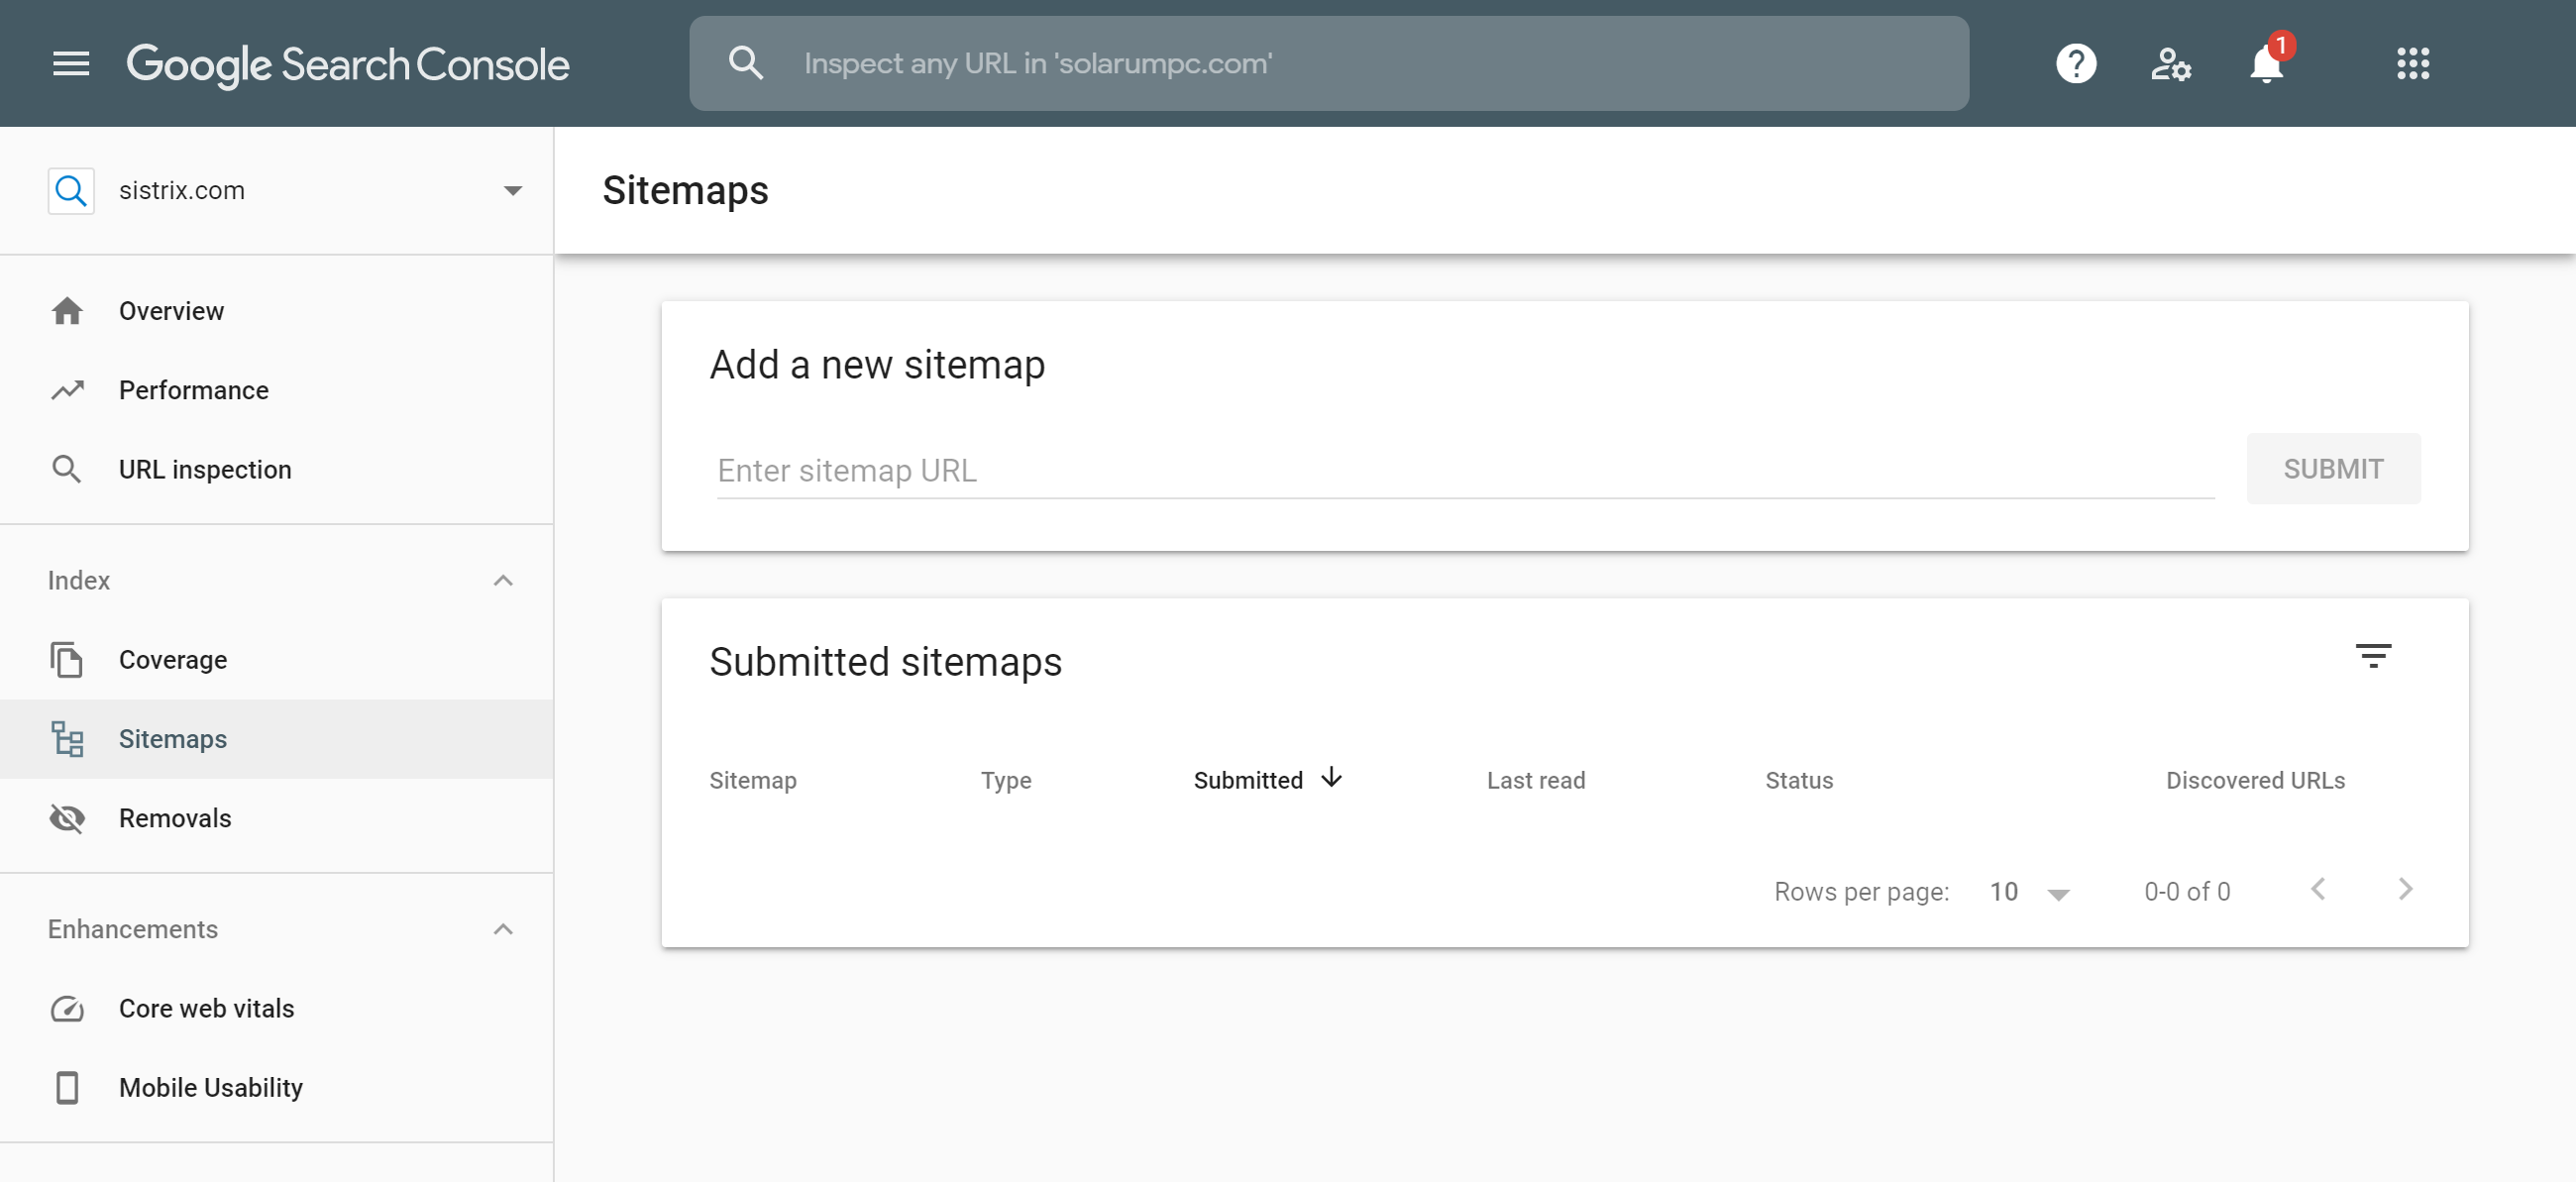 Google Search Console Sitemaps feature